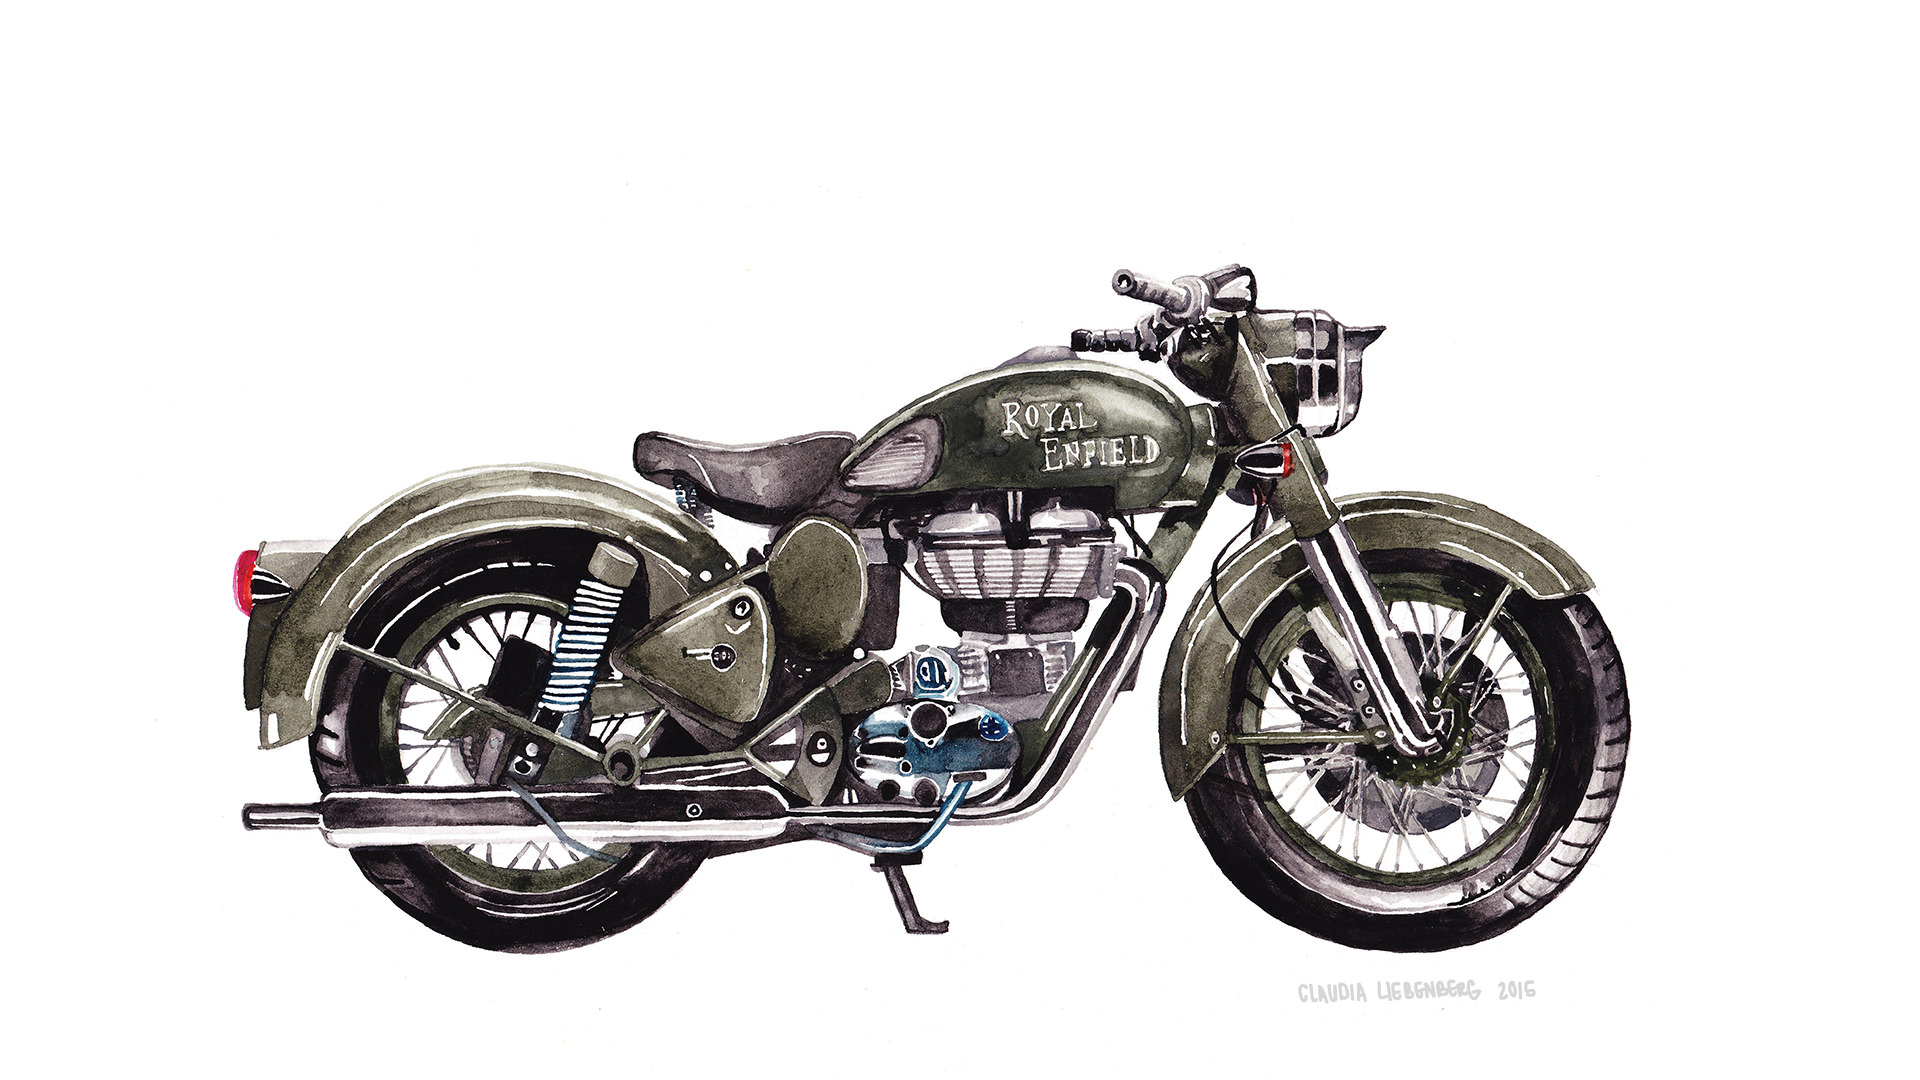 Royal Enfield Cafe Racer Hd Wallpaper Download Enfield Paint And Wallpaper Gallery